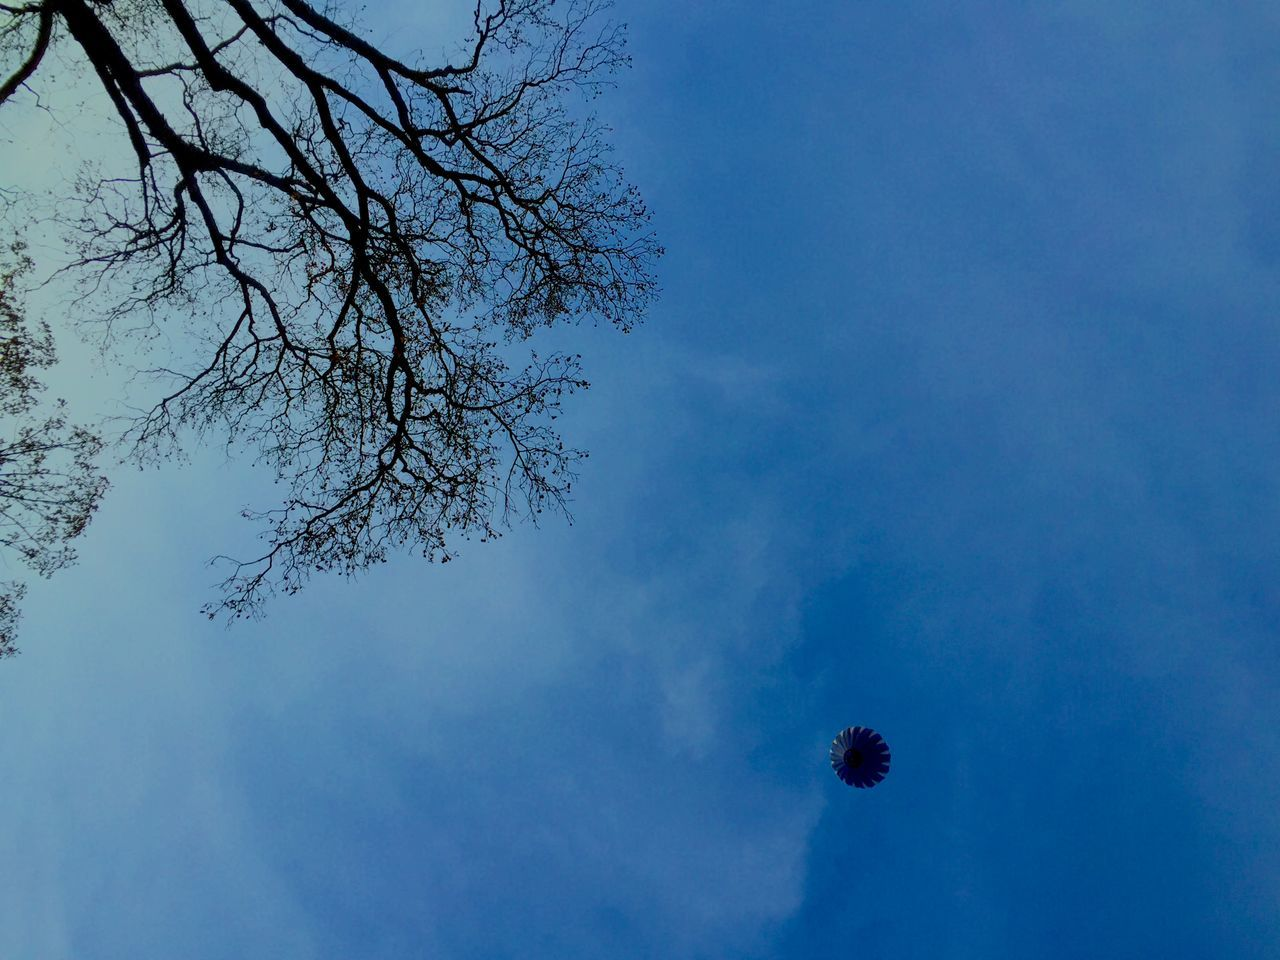 Directly Below Shot Of Hot Air Balloon Against Blue Sky